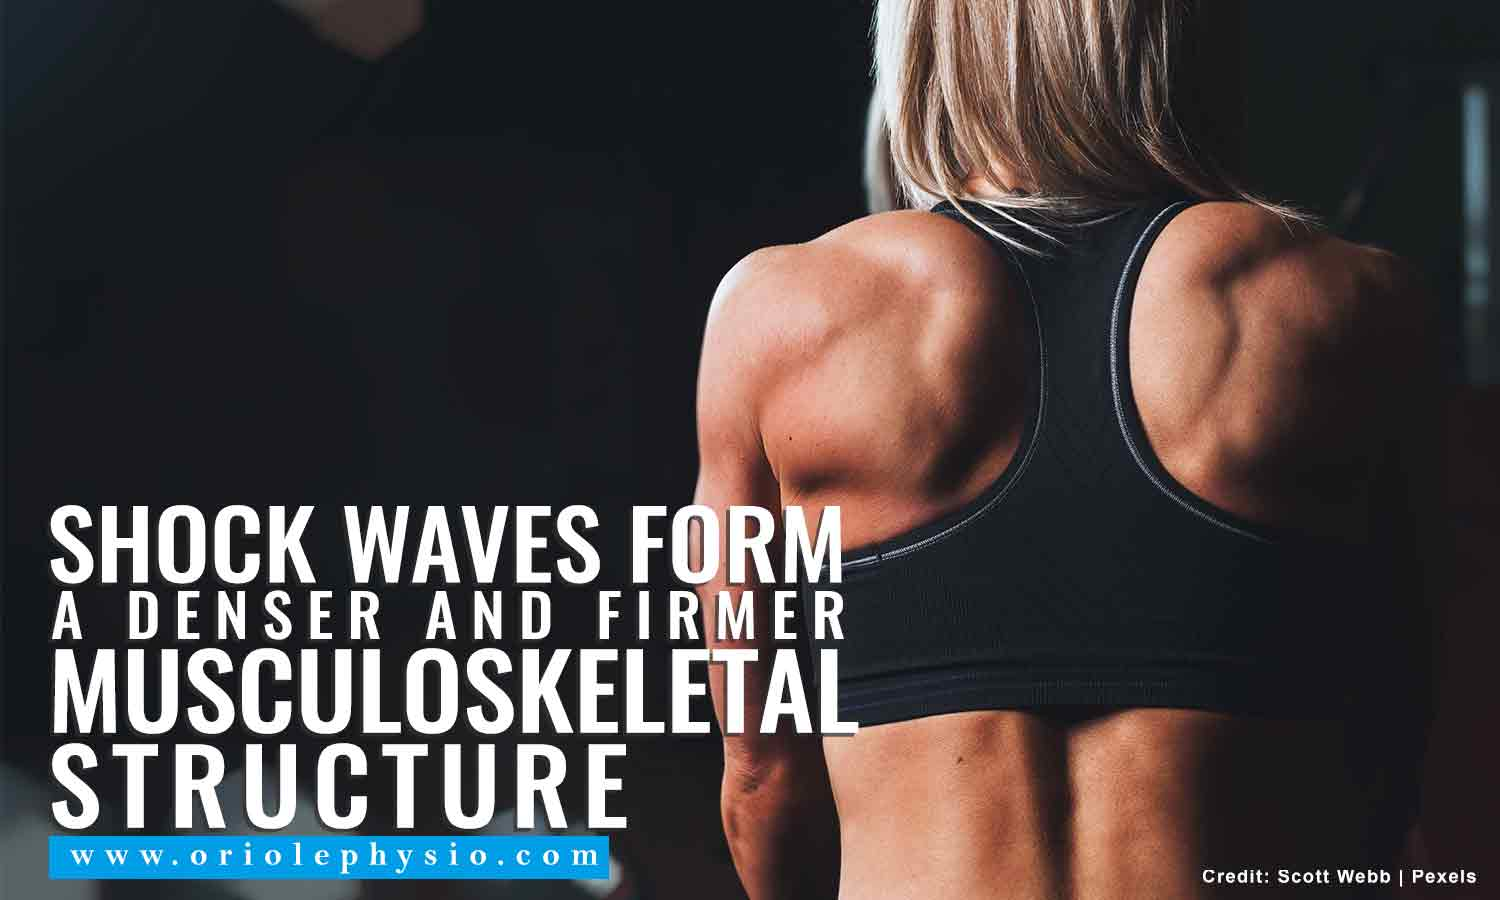 Shock waves form a denser and firmer musculoskeletal structure